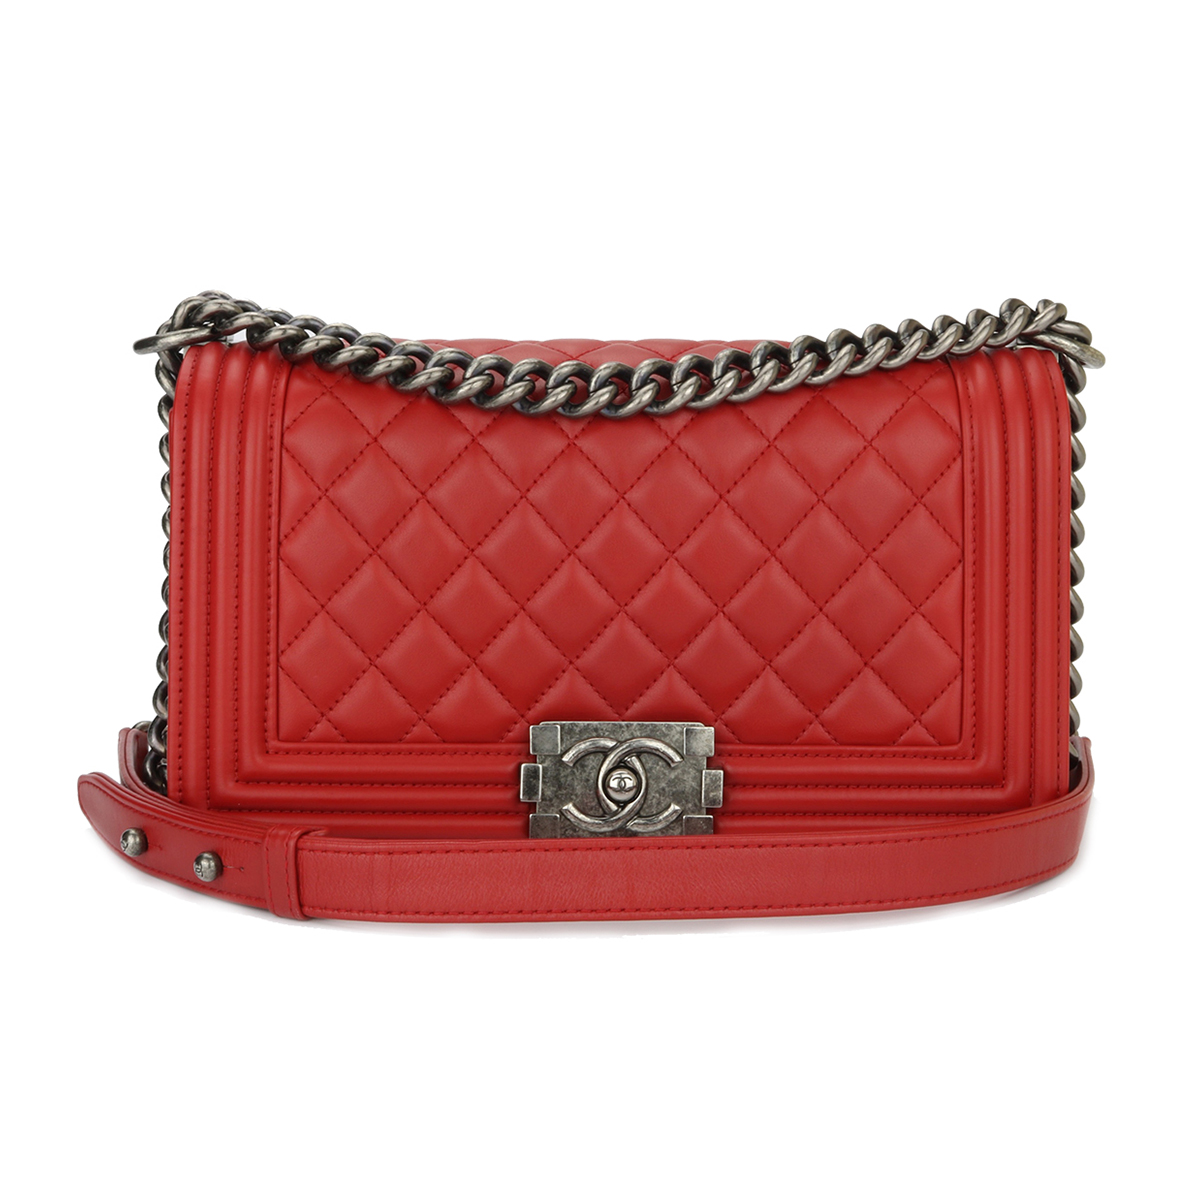 bdd32cb6e9cb89 Home/Chanel/CHANEL Old Medium Boy Quilted Red Calfskin Ruthenium Hardware  2015. ; 